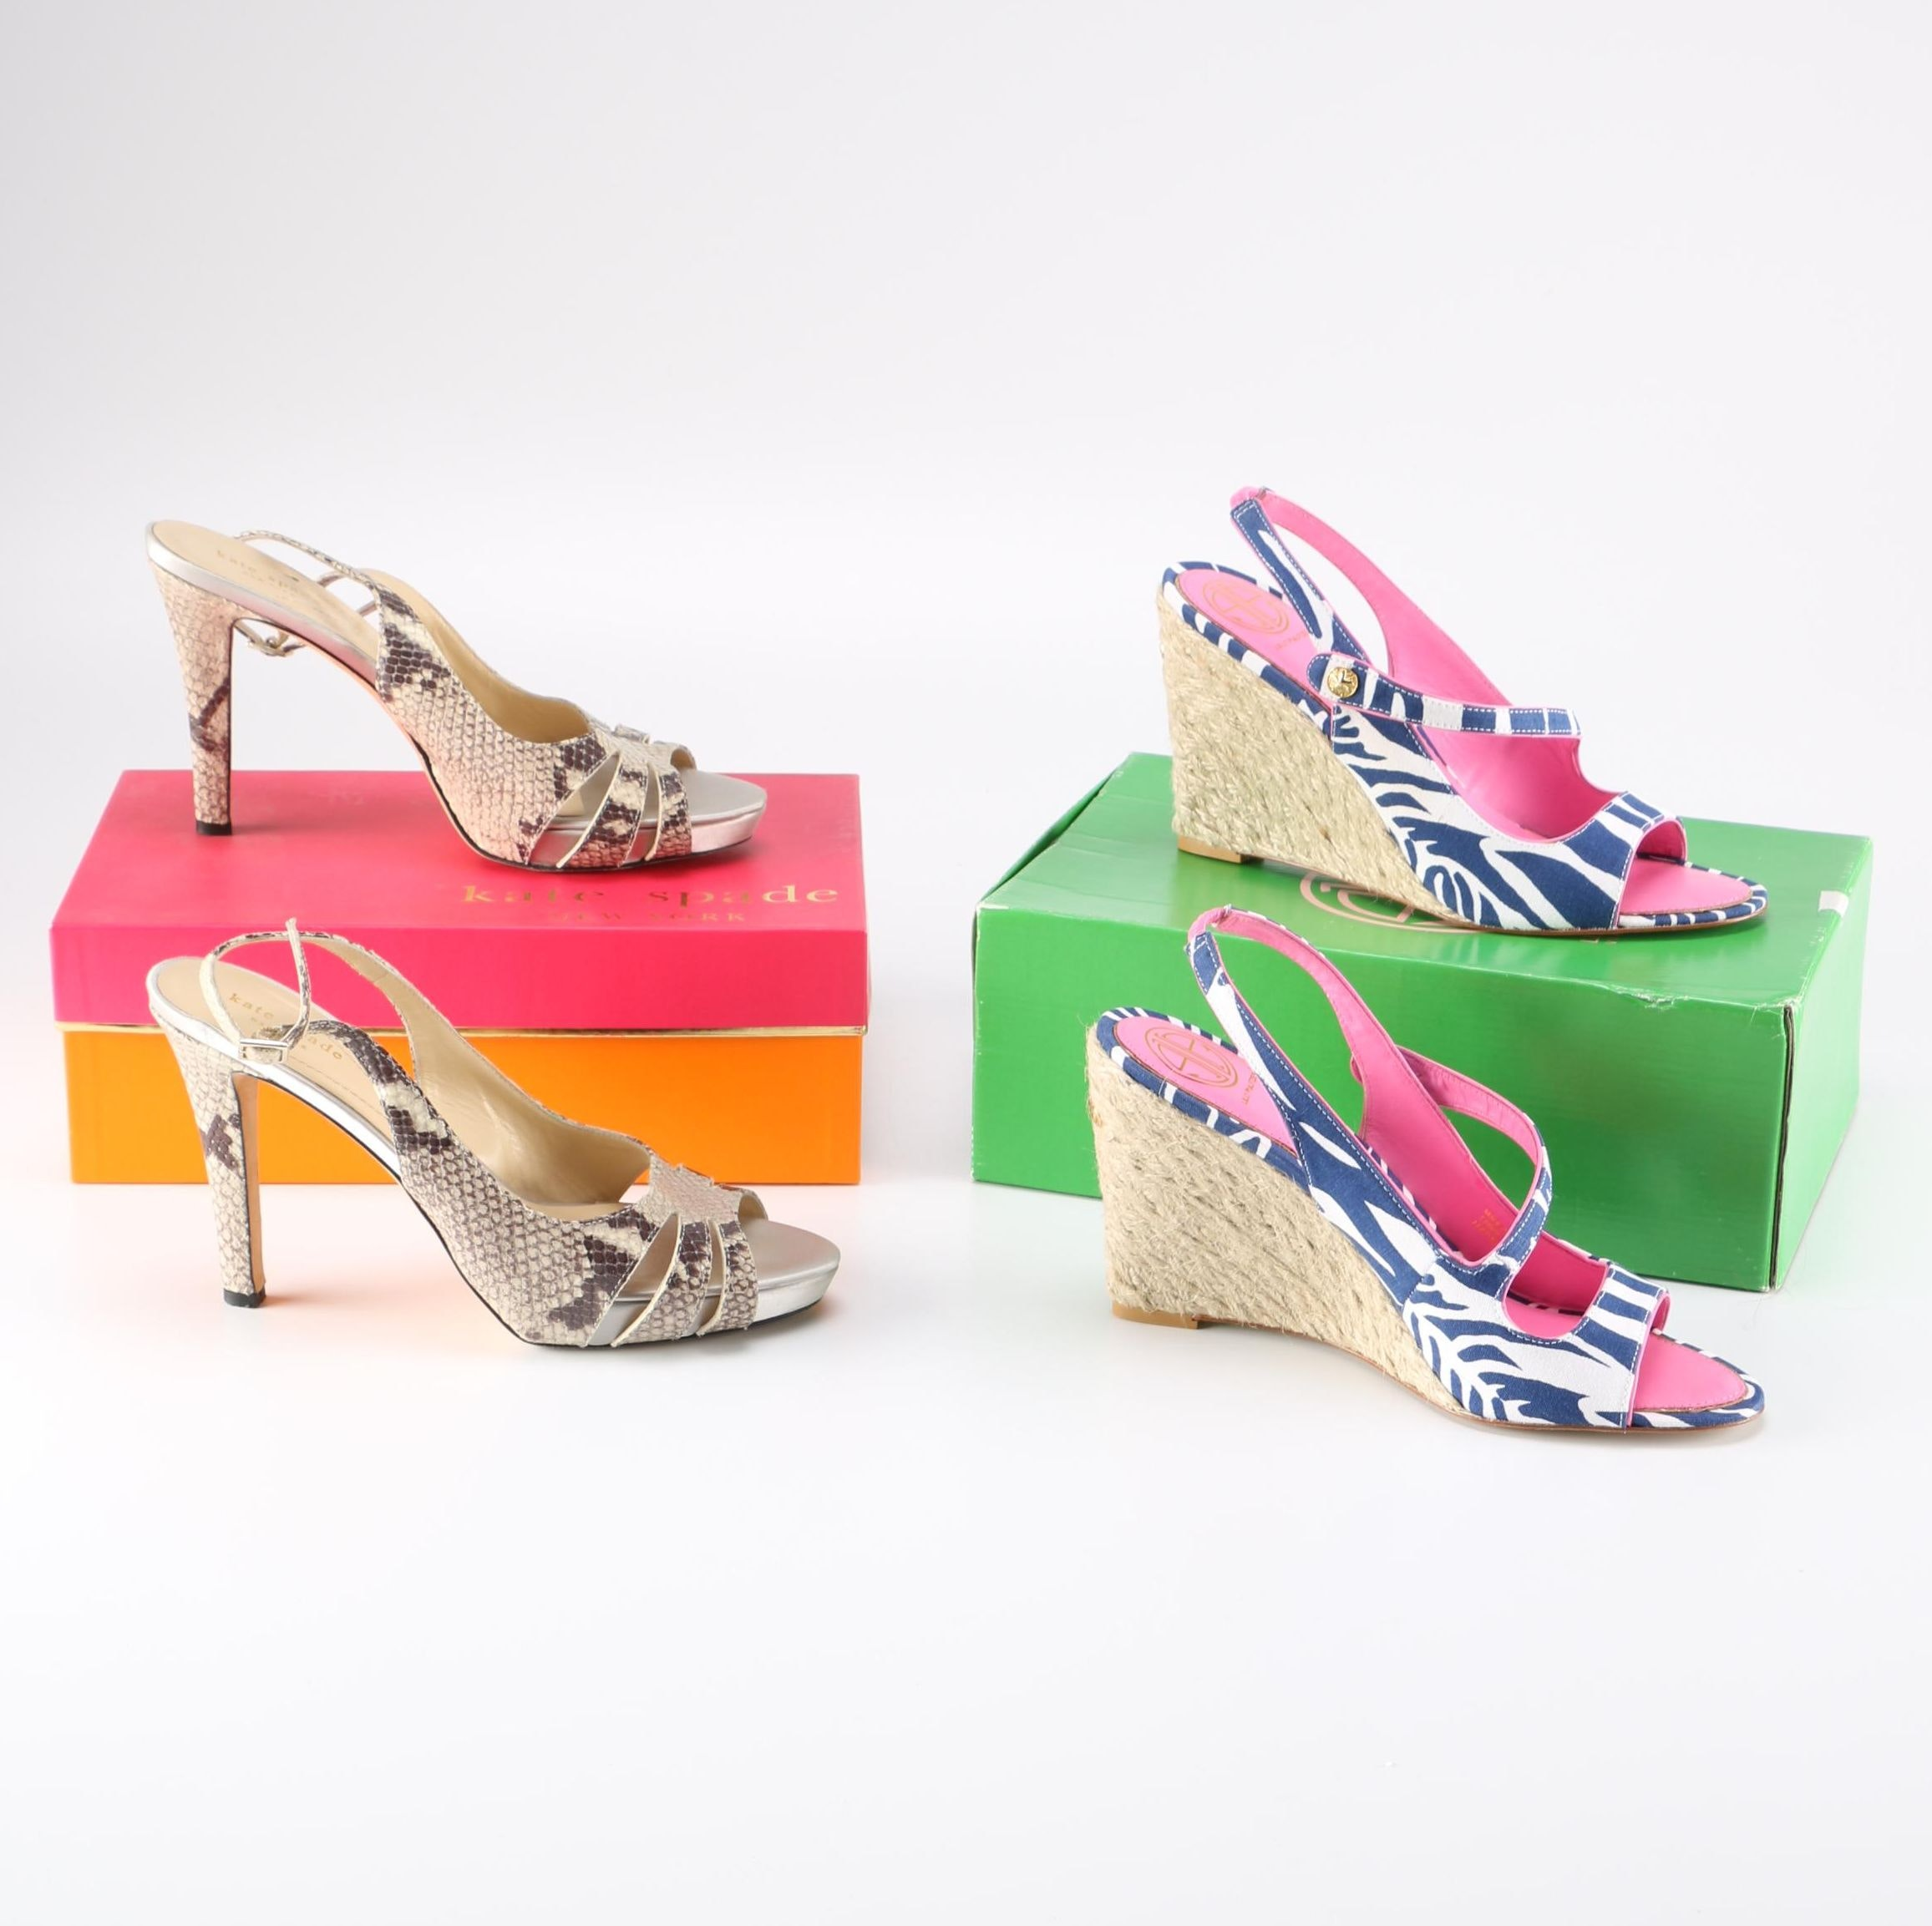 Kate Spade Snakeskin Pumps and Lilly Pulitzer Wedges